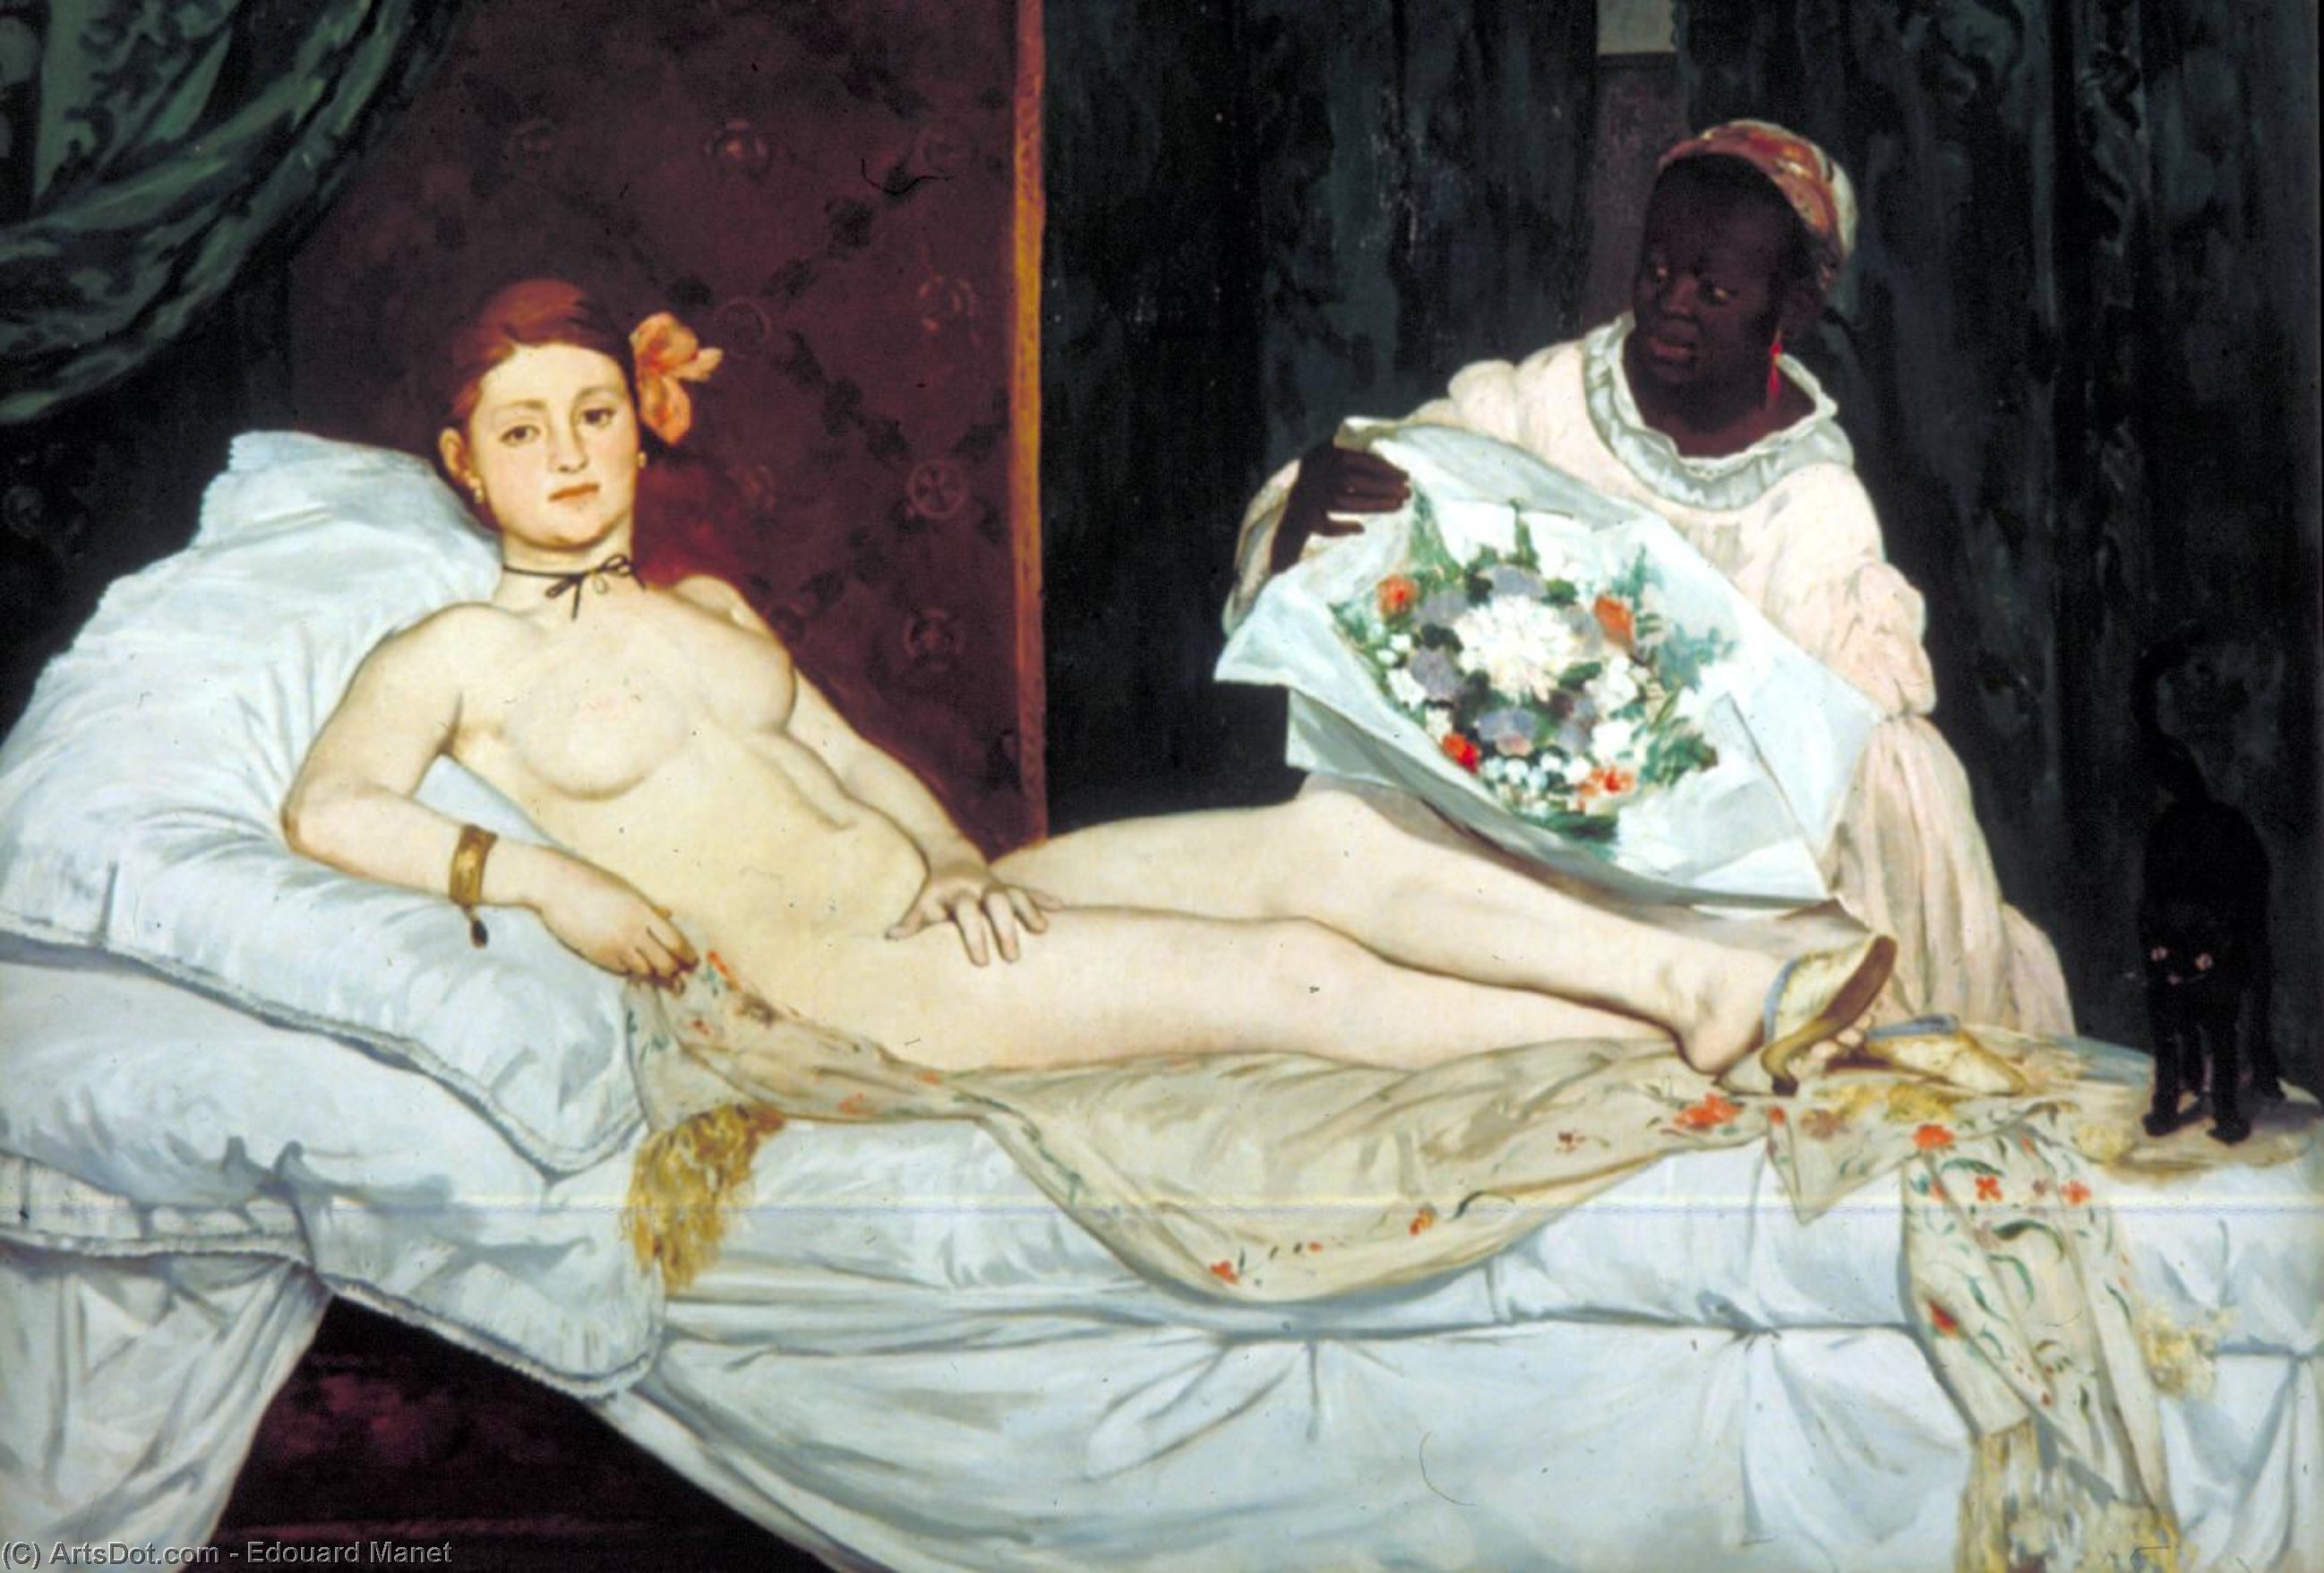 WikiOO.org - Encyclopedia of Fine Arts - Lukisan, Artwork Edouard Manet - Olympia, Musee d'Orsay, Paris